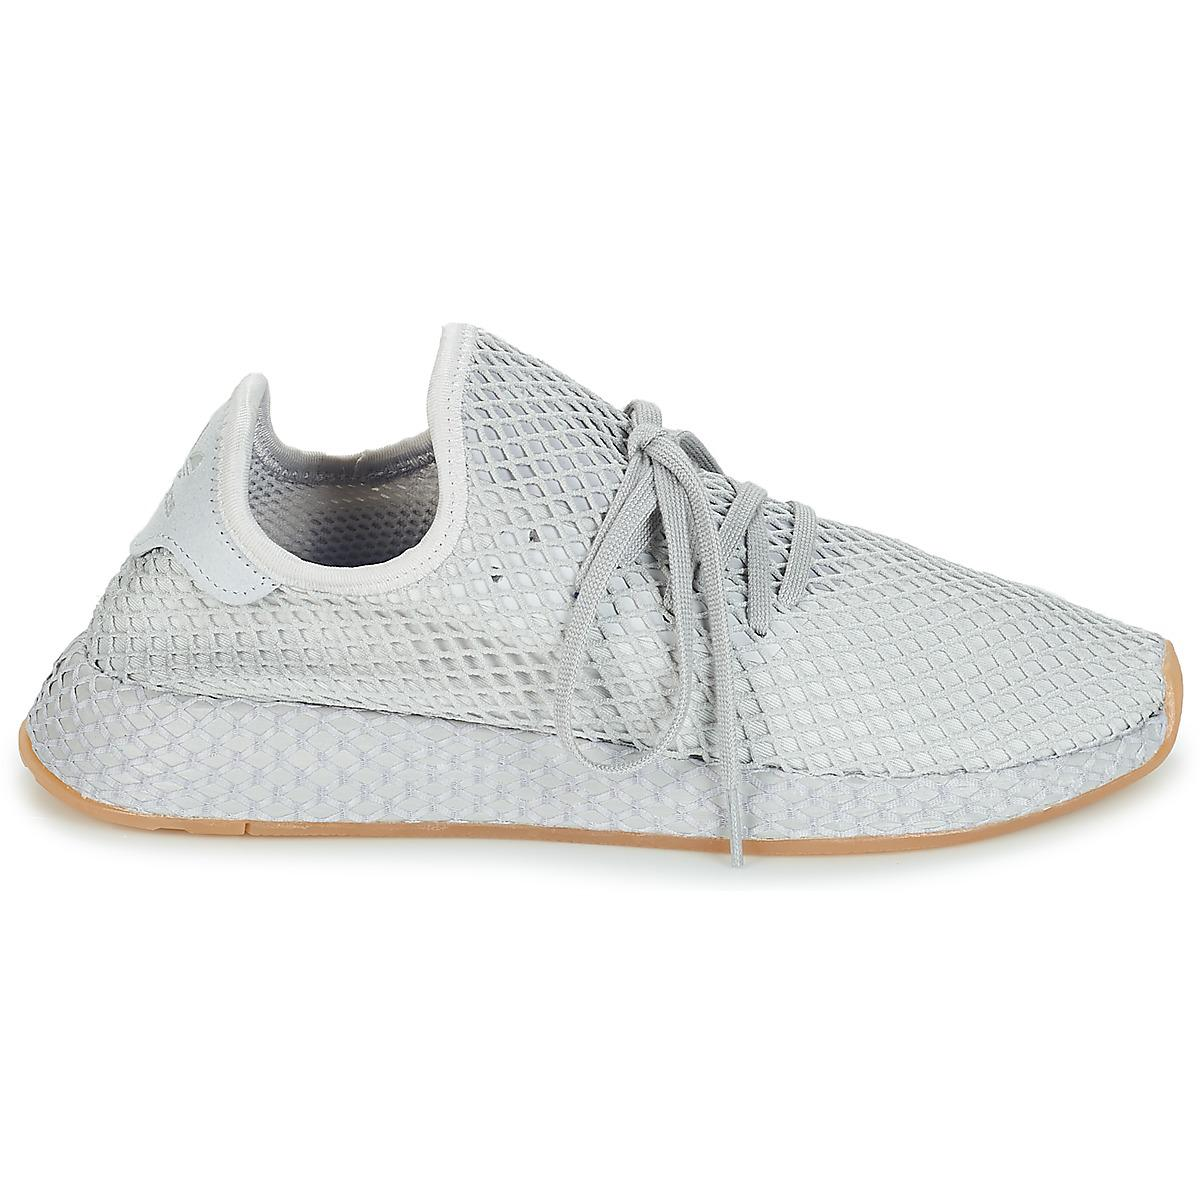 51f8544eac838 Adidas - Multicolor Deerupt Runner Shoes (trainers) for Men - Lyst. View  fullscreen